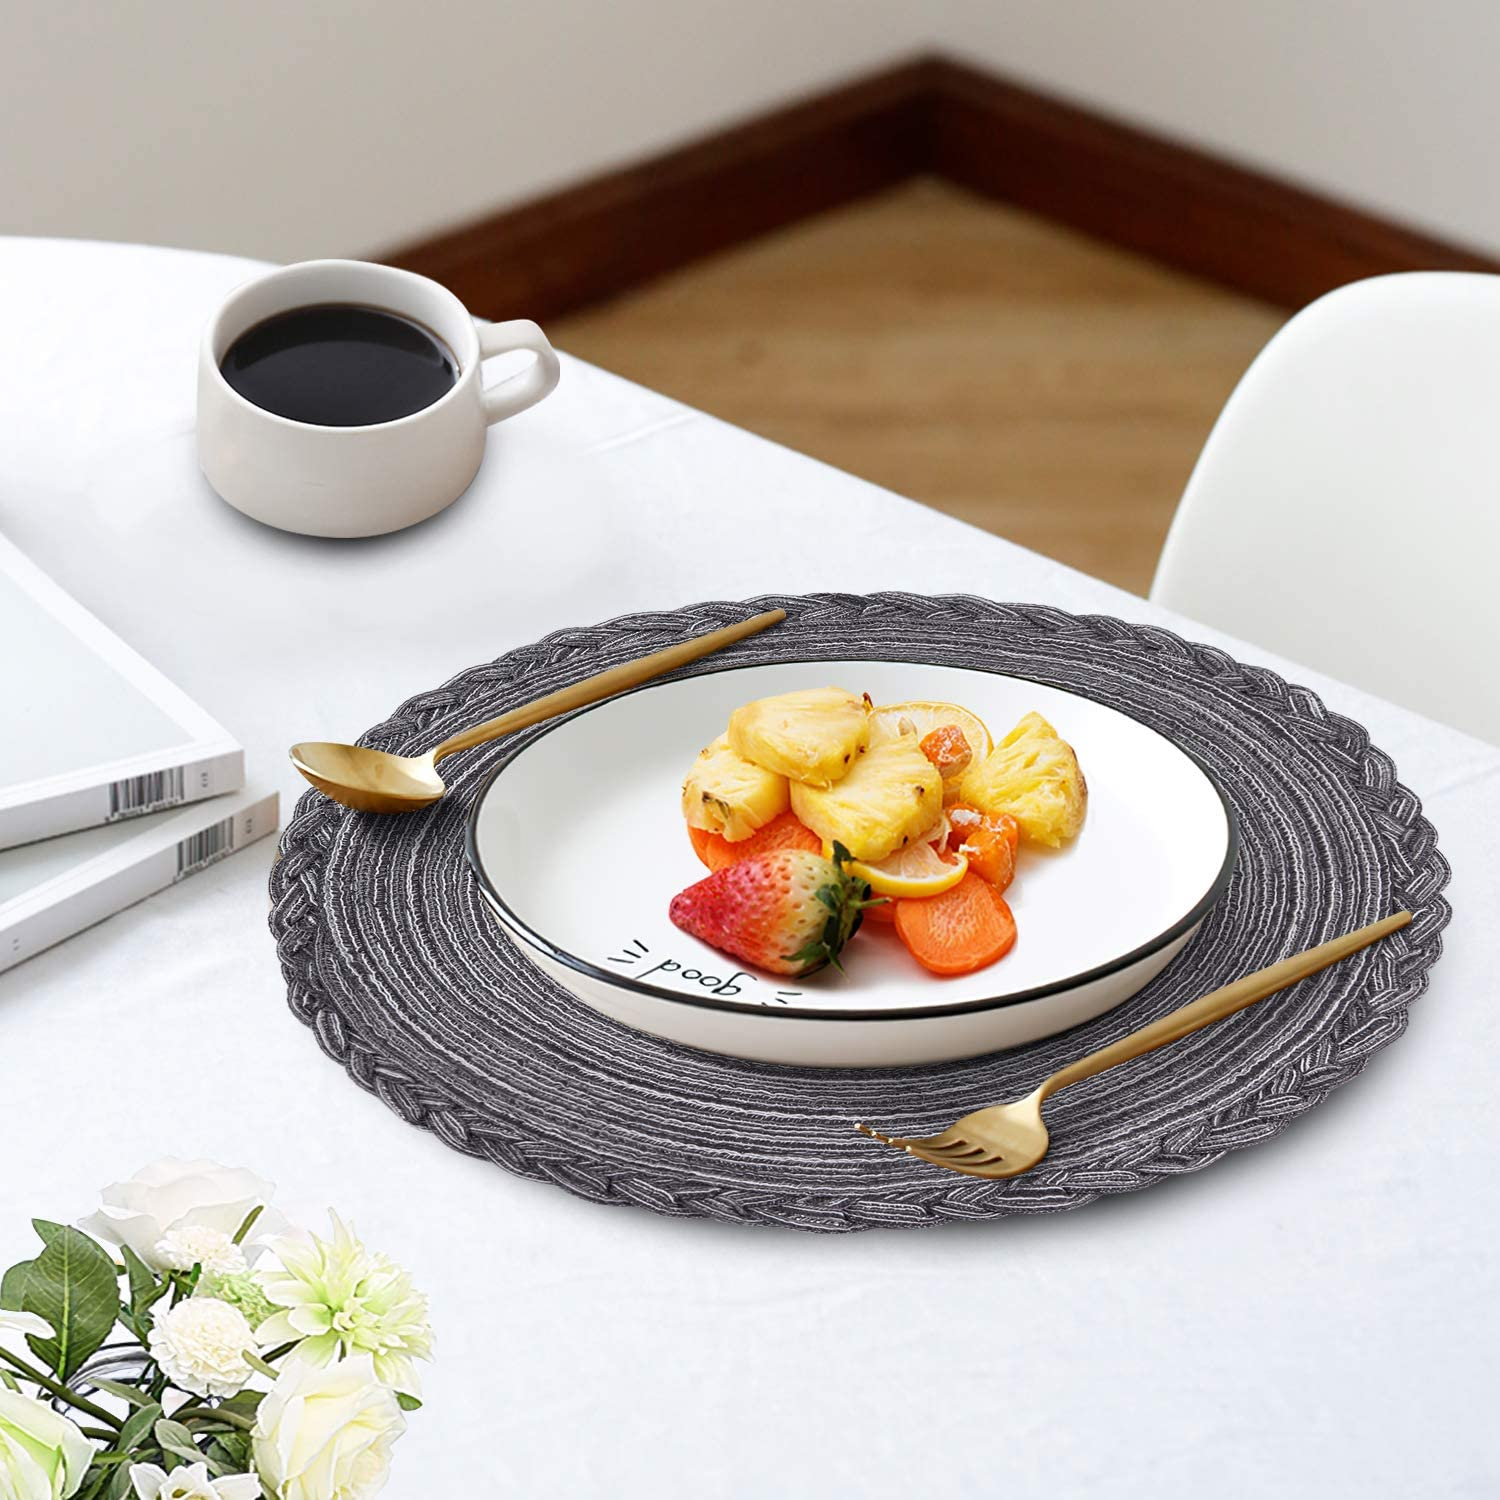 Homaxy Round Braided Christmas Placemats for Dining Table Set of 4 Woven Heat Resistant Non-Slip Happy Gingerbread Man Kitchen Table Mats 15 Diameter